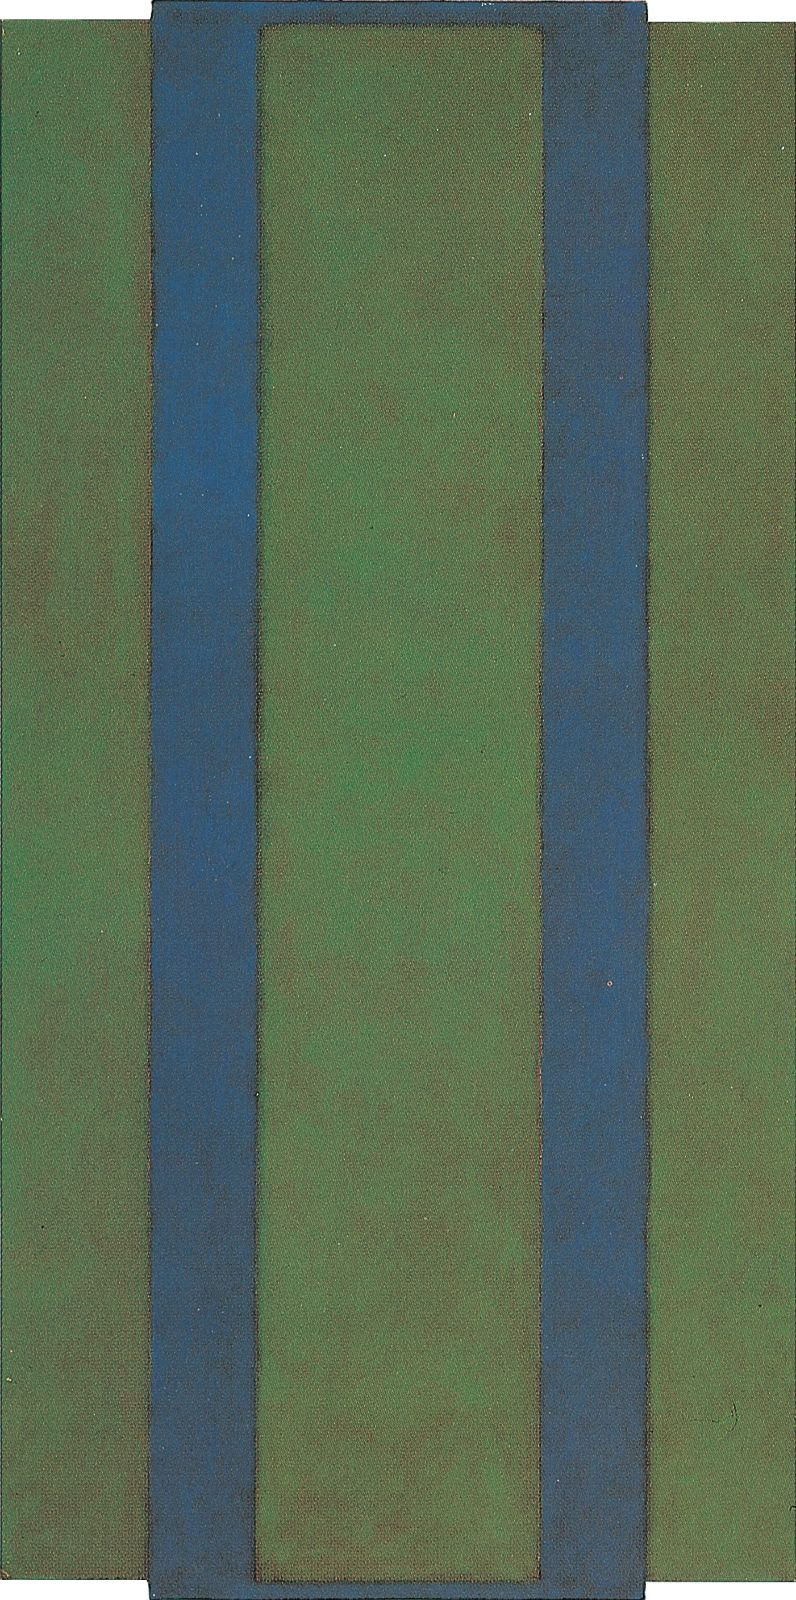 Untitled (Green-Blue), 1982, acrylic on canvas on panel, 150 x 75 cm